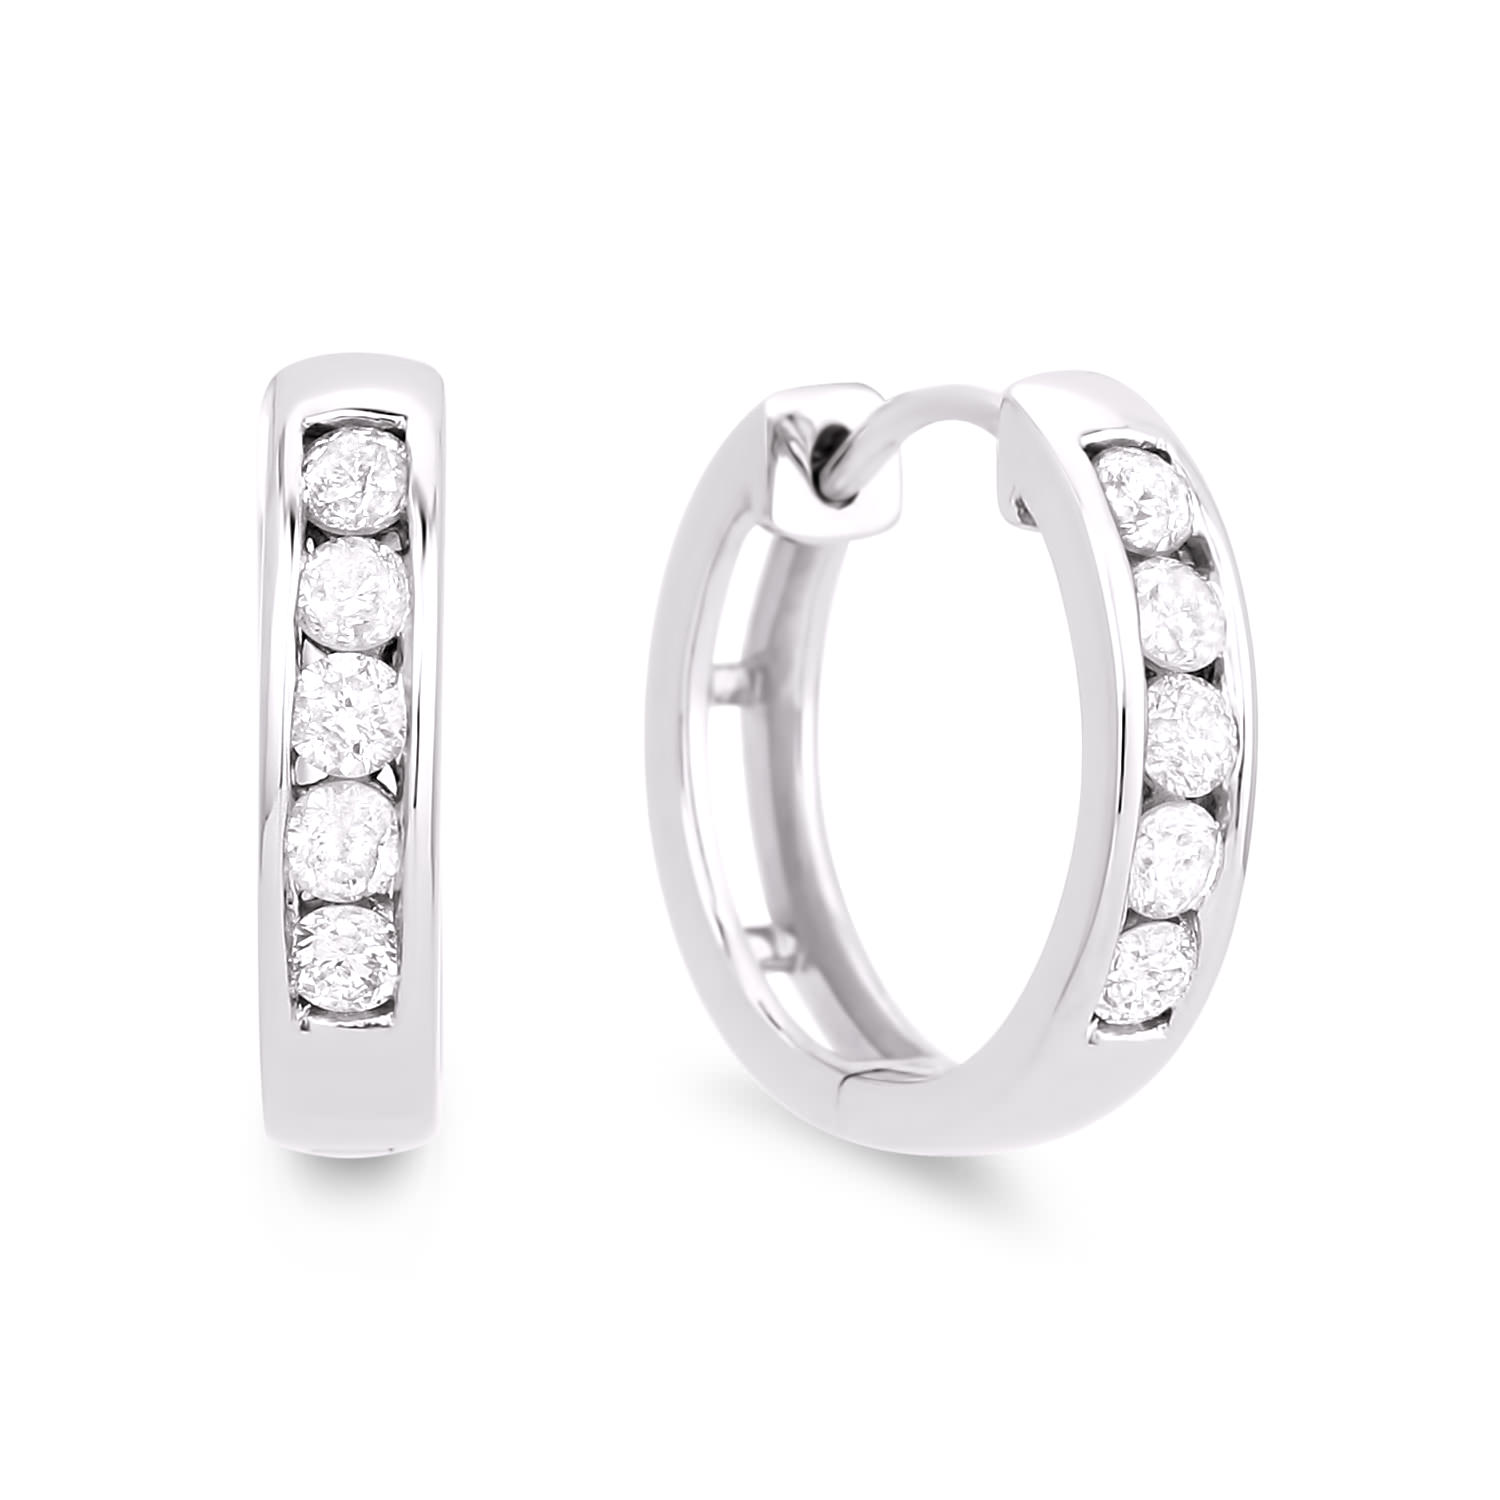 Diamond Hoop Earrings SGE100 (Earrings)